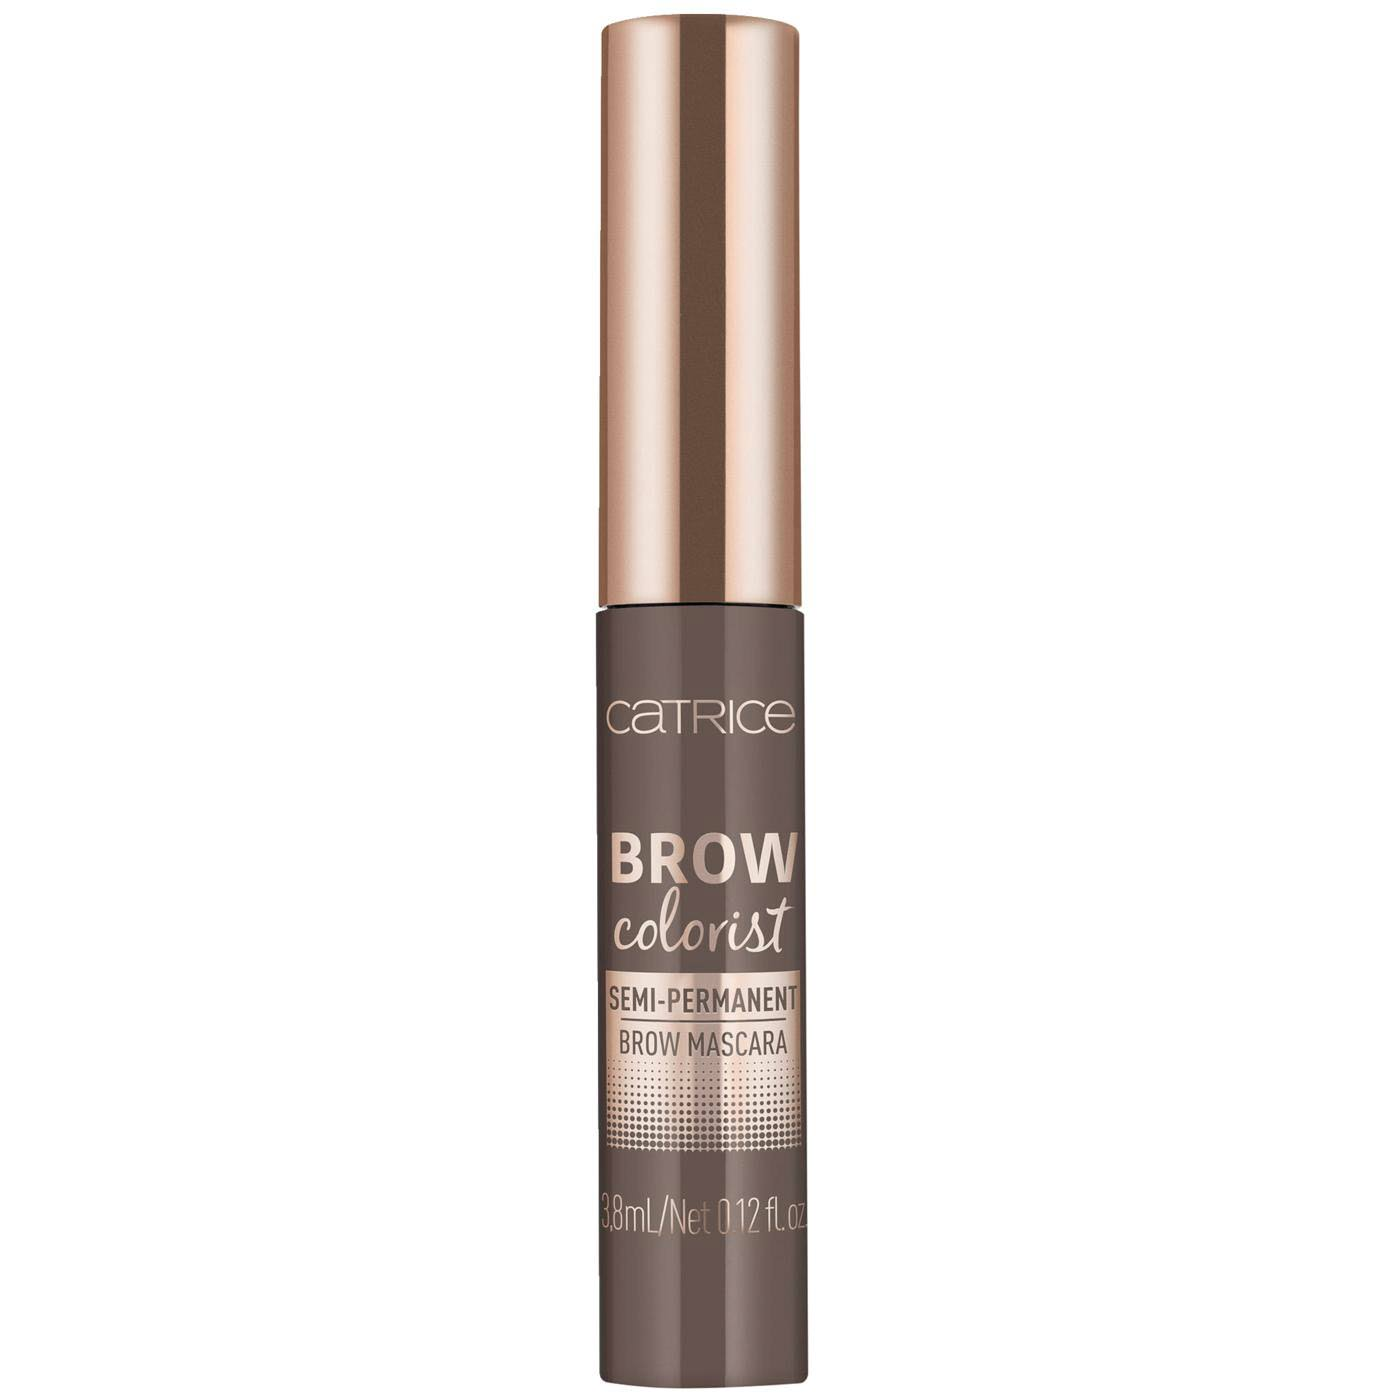 Catrice Brow Semi Per Brow Mascara - 030 Dark, 3.8ml